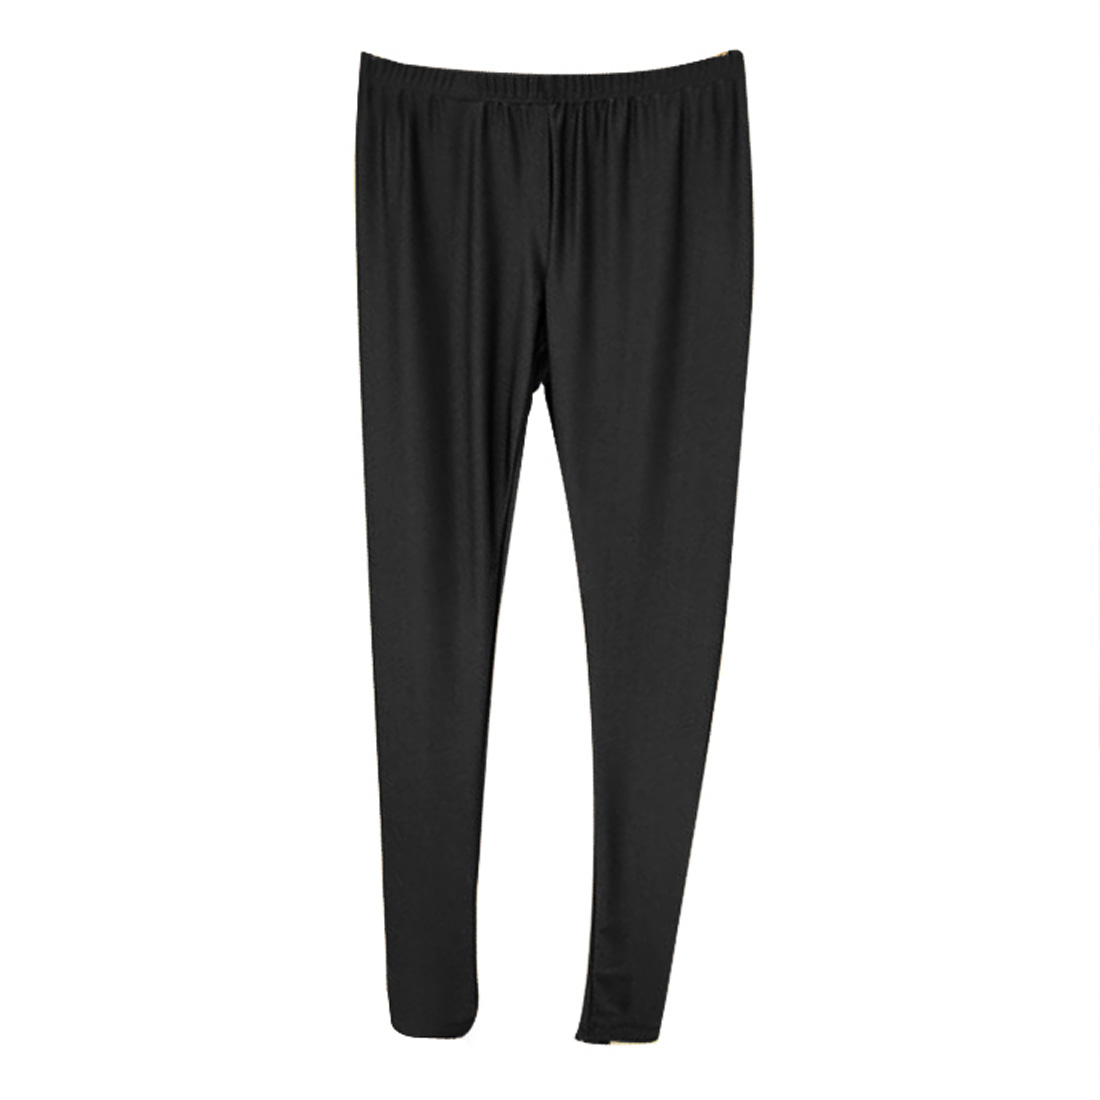 Ladies Black Elastic Waist Stretchy Footless Skinny Leggings Pants XS